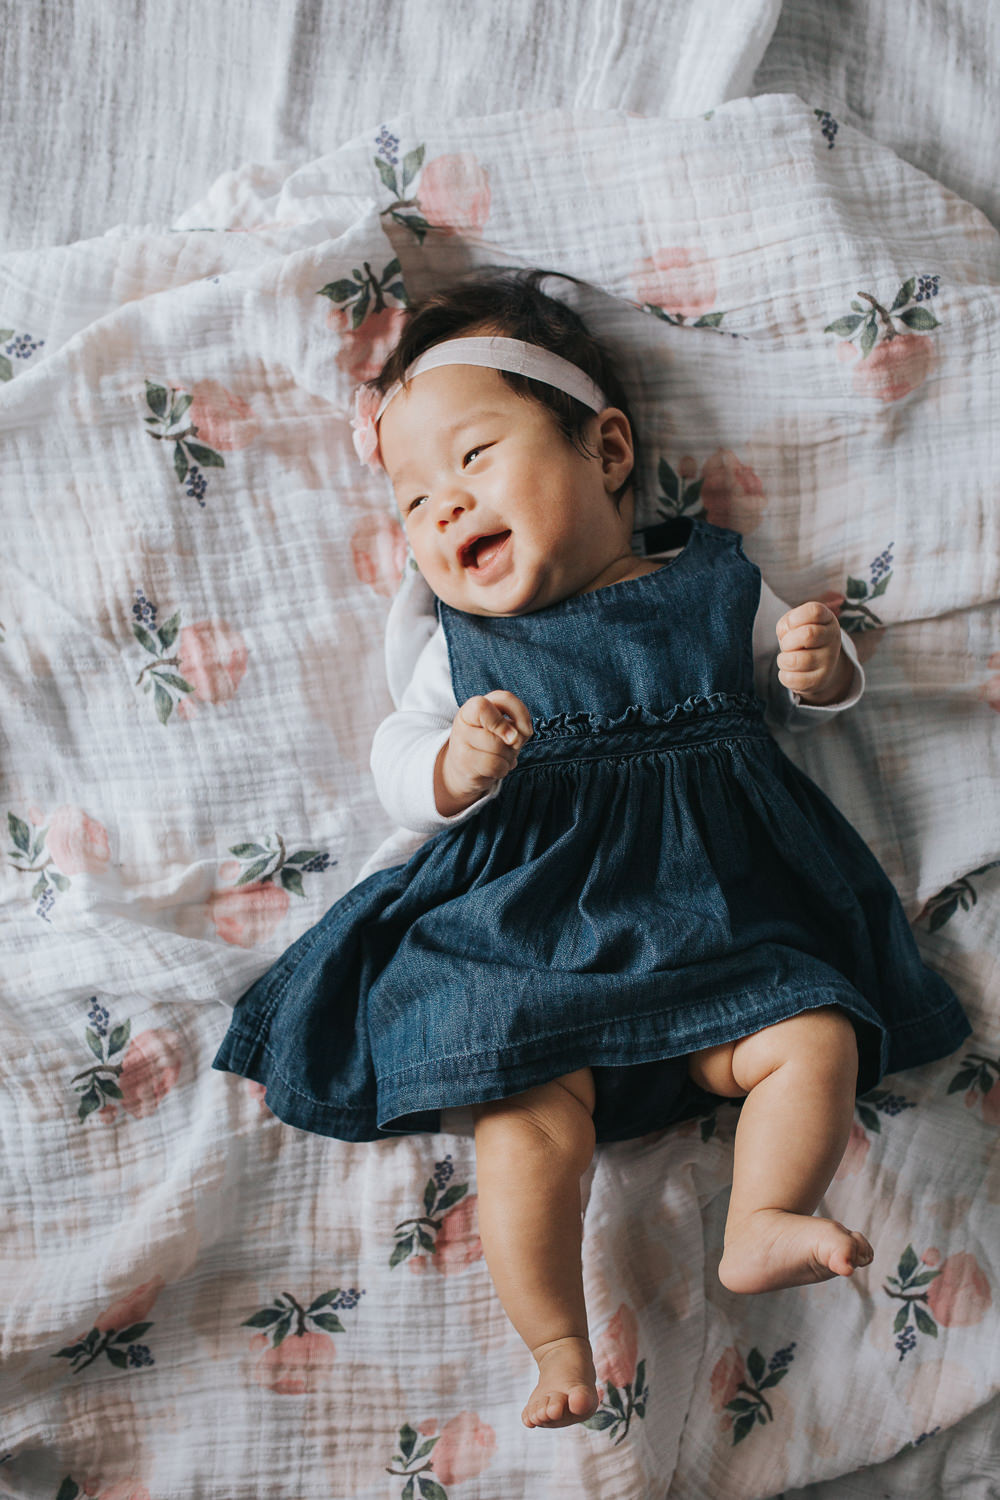 3 month old baby girl in blue dress and pink headband lying on floral blanket laughing - Markham Lifestyle Photography